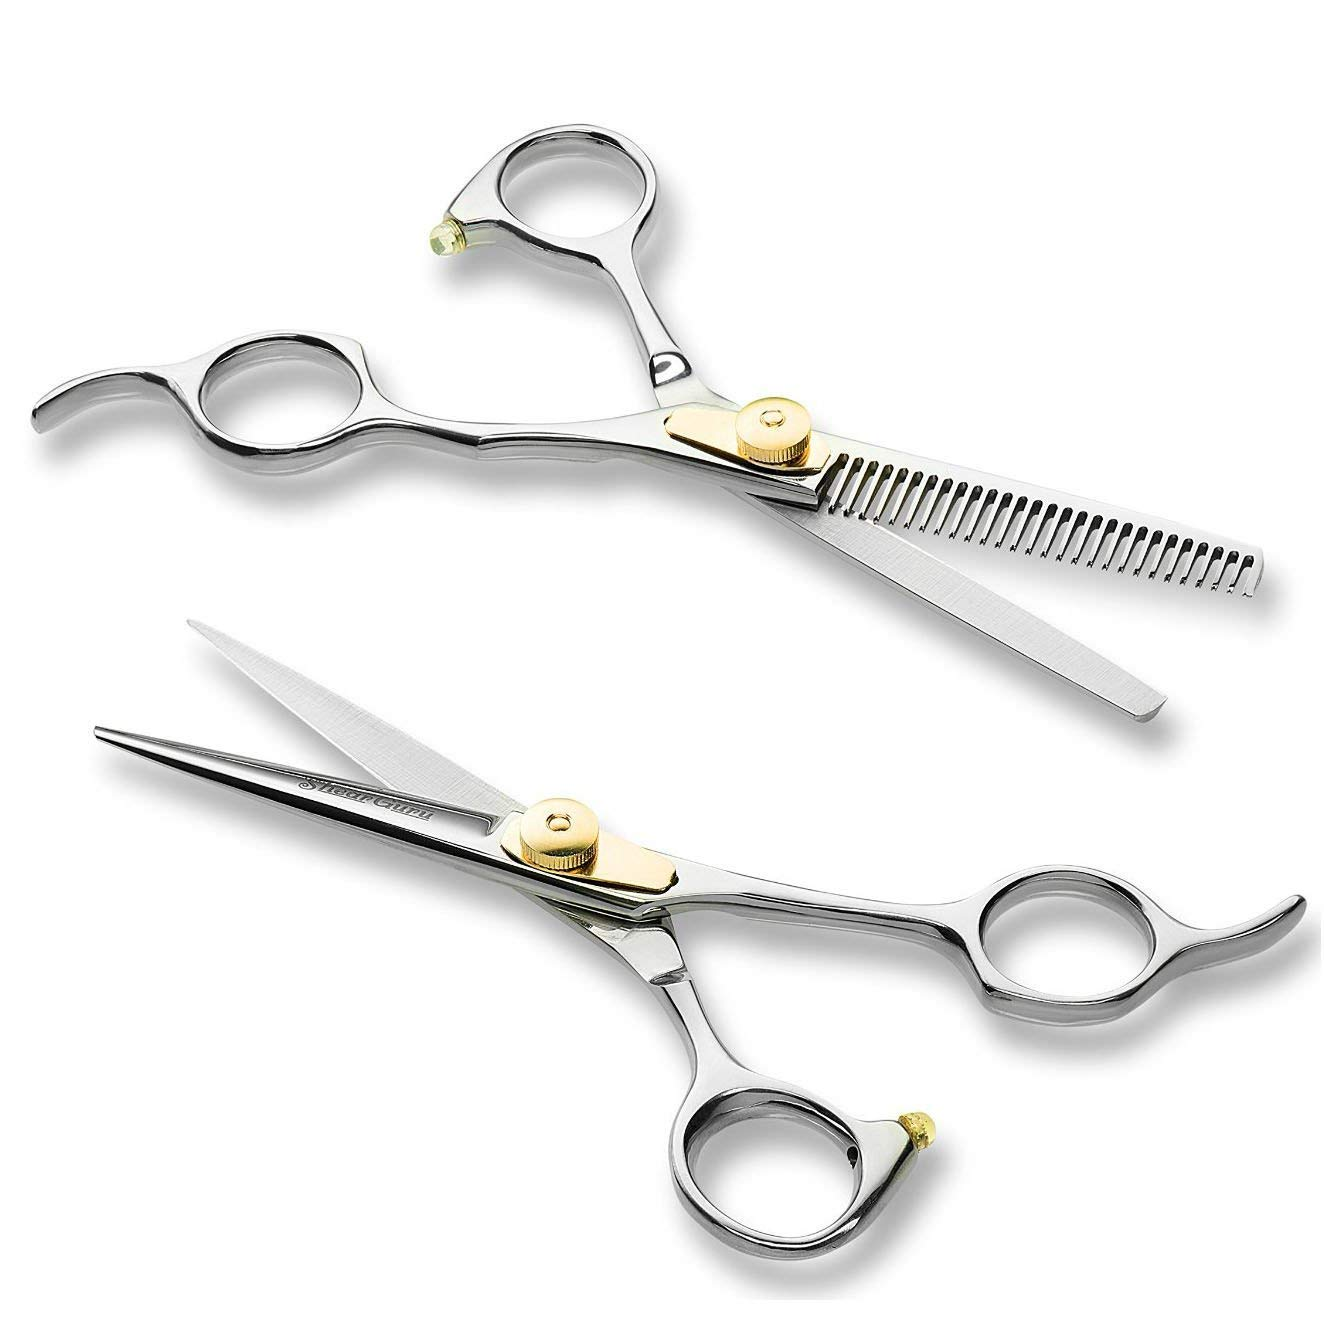 DOLA Hair Scissors, Professional Hair Cutting Shears, Barber/Salon/Home Thinning Shears Kit with One Regular Hair Scissors, One Thinning Scissors and One Grooming Comb